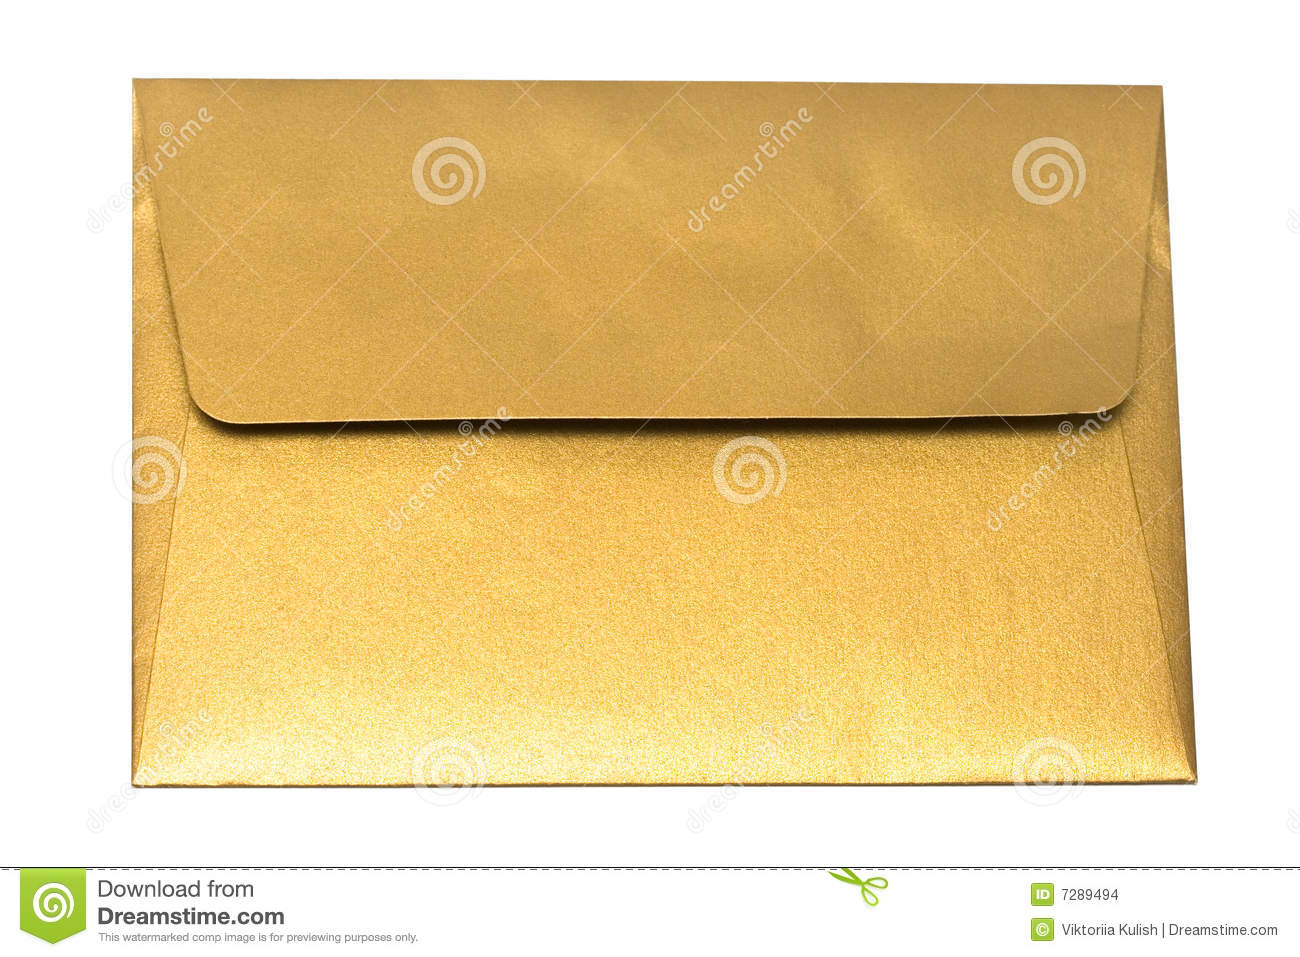 Envelope do ouro isolado